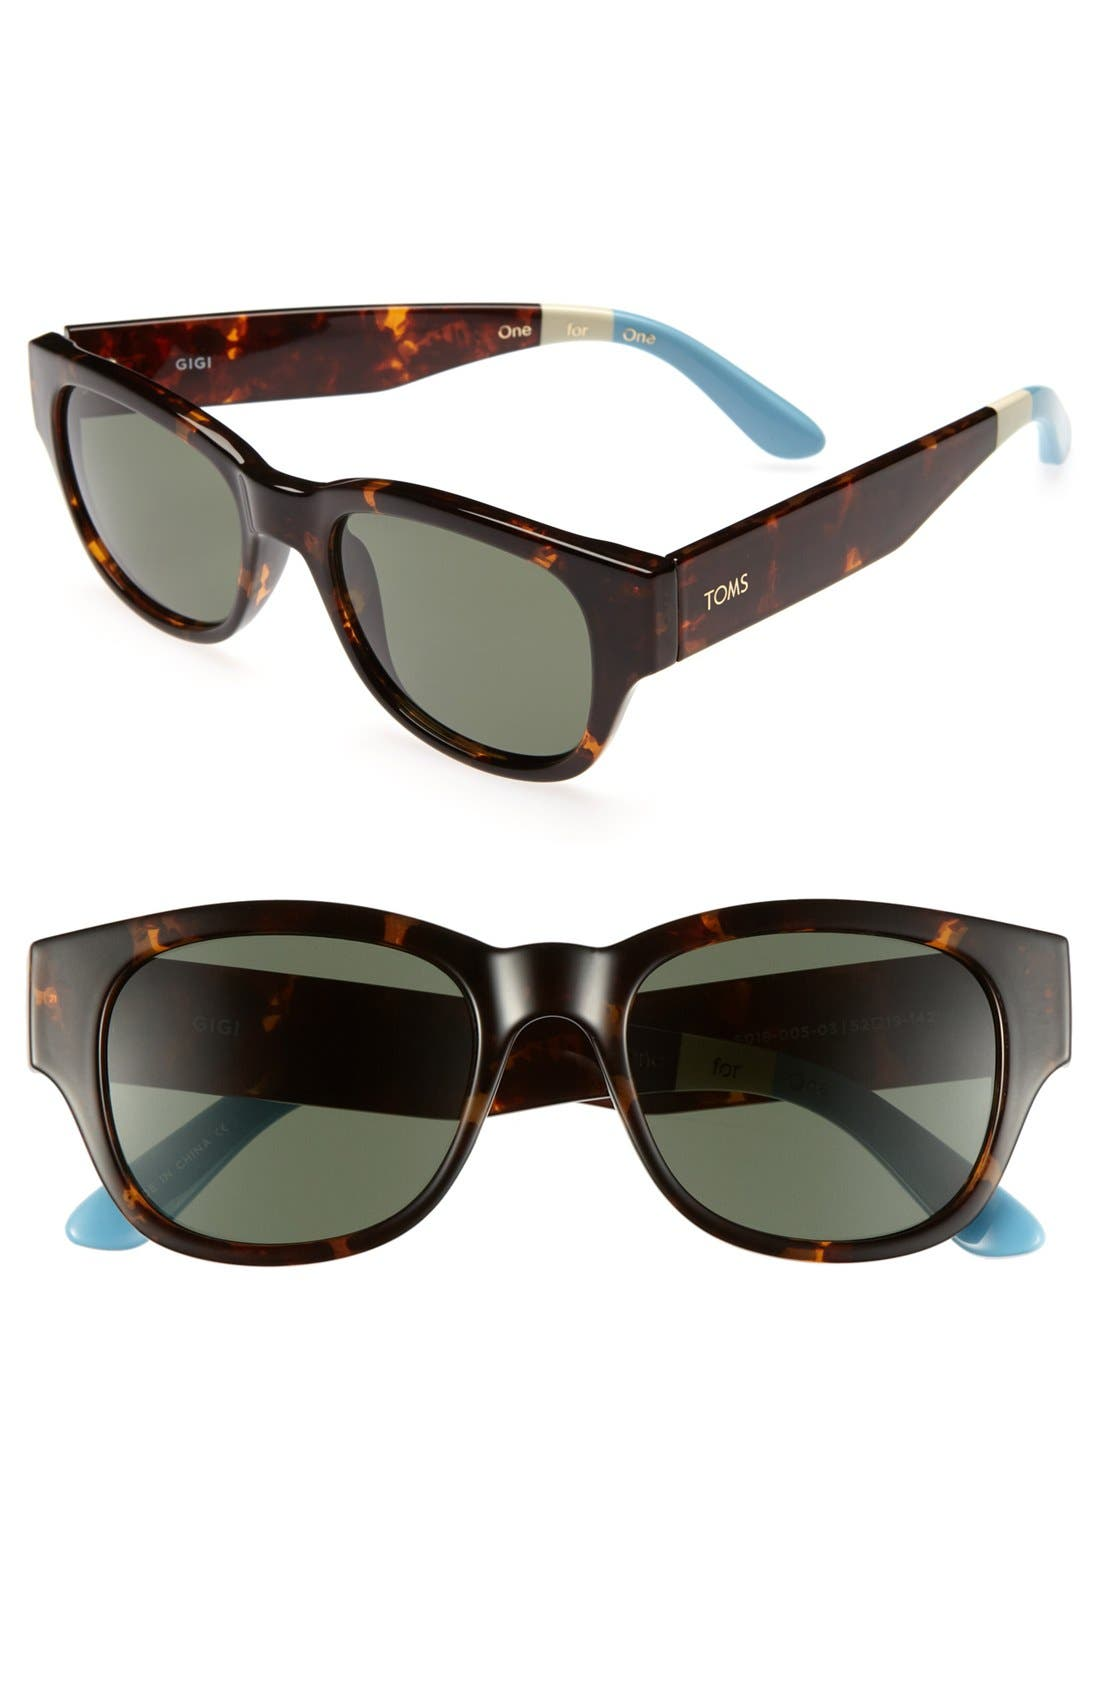 Alternate Image 1 Selected - TOMS 'Gigi' 52mm Sunglasses